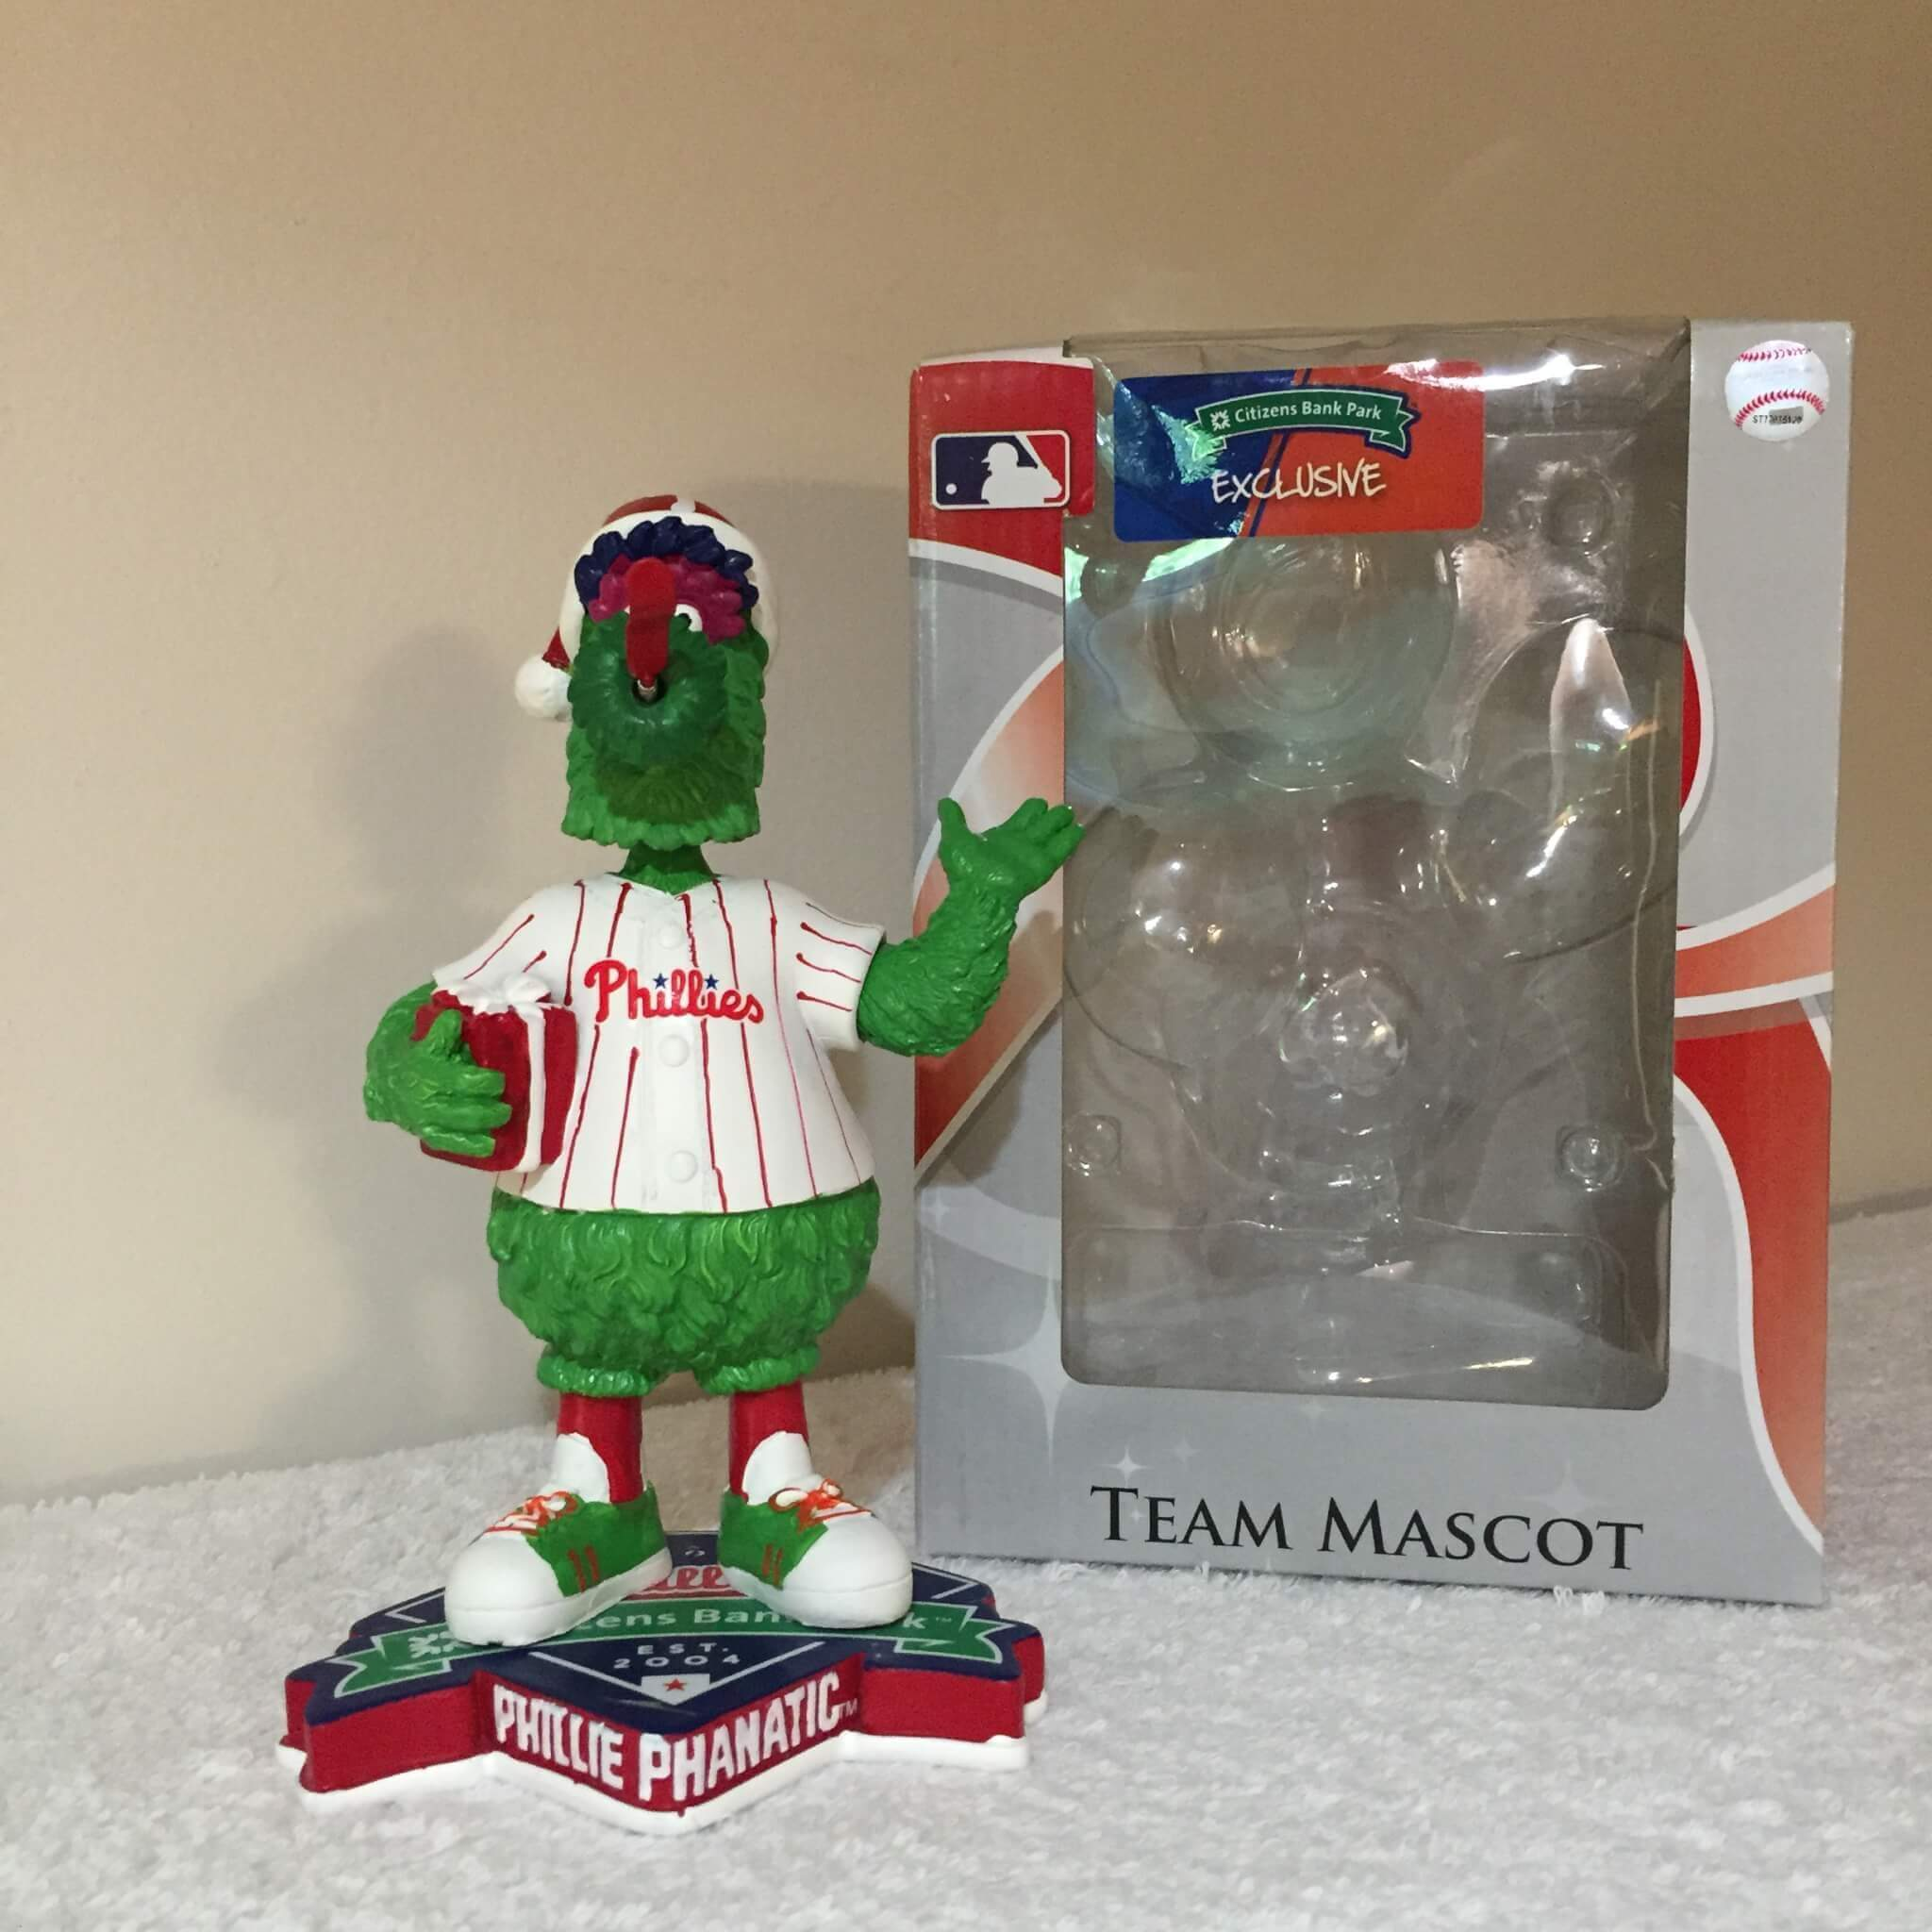 Philly Phanatic